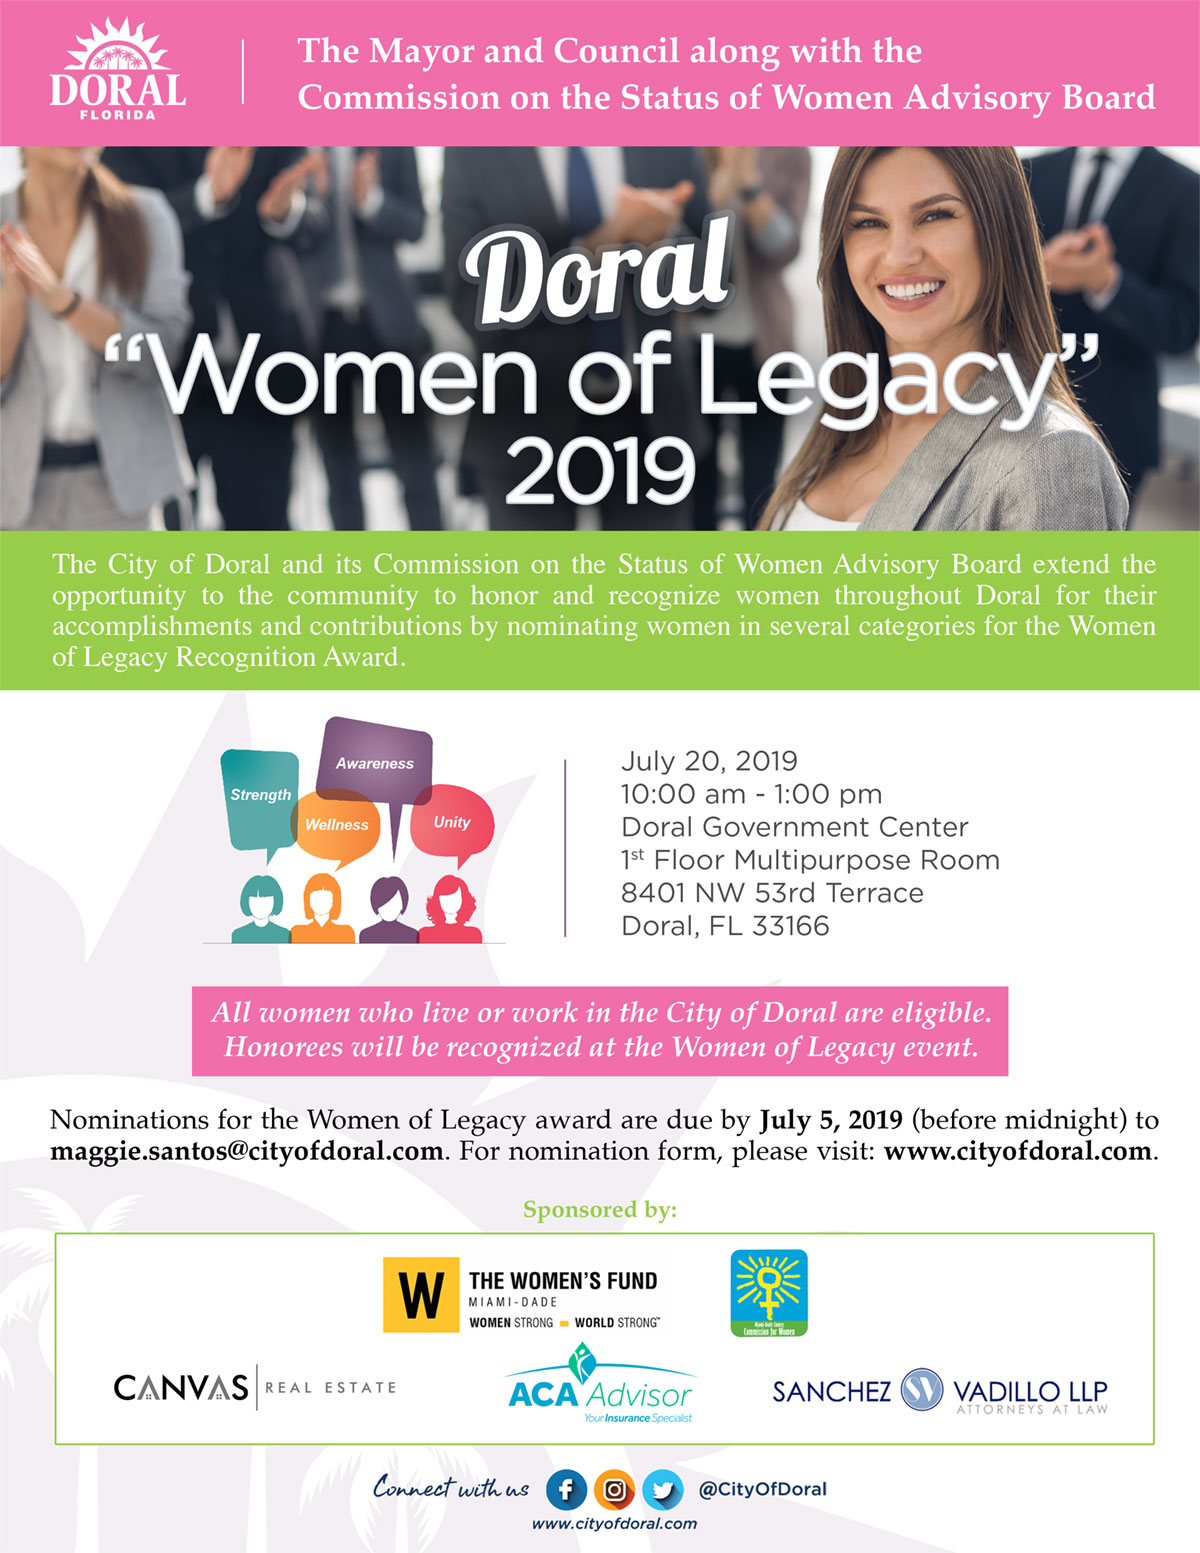 Doral Women of Legacy